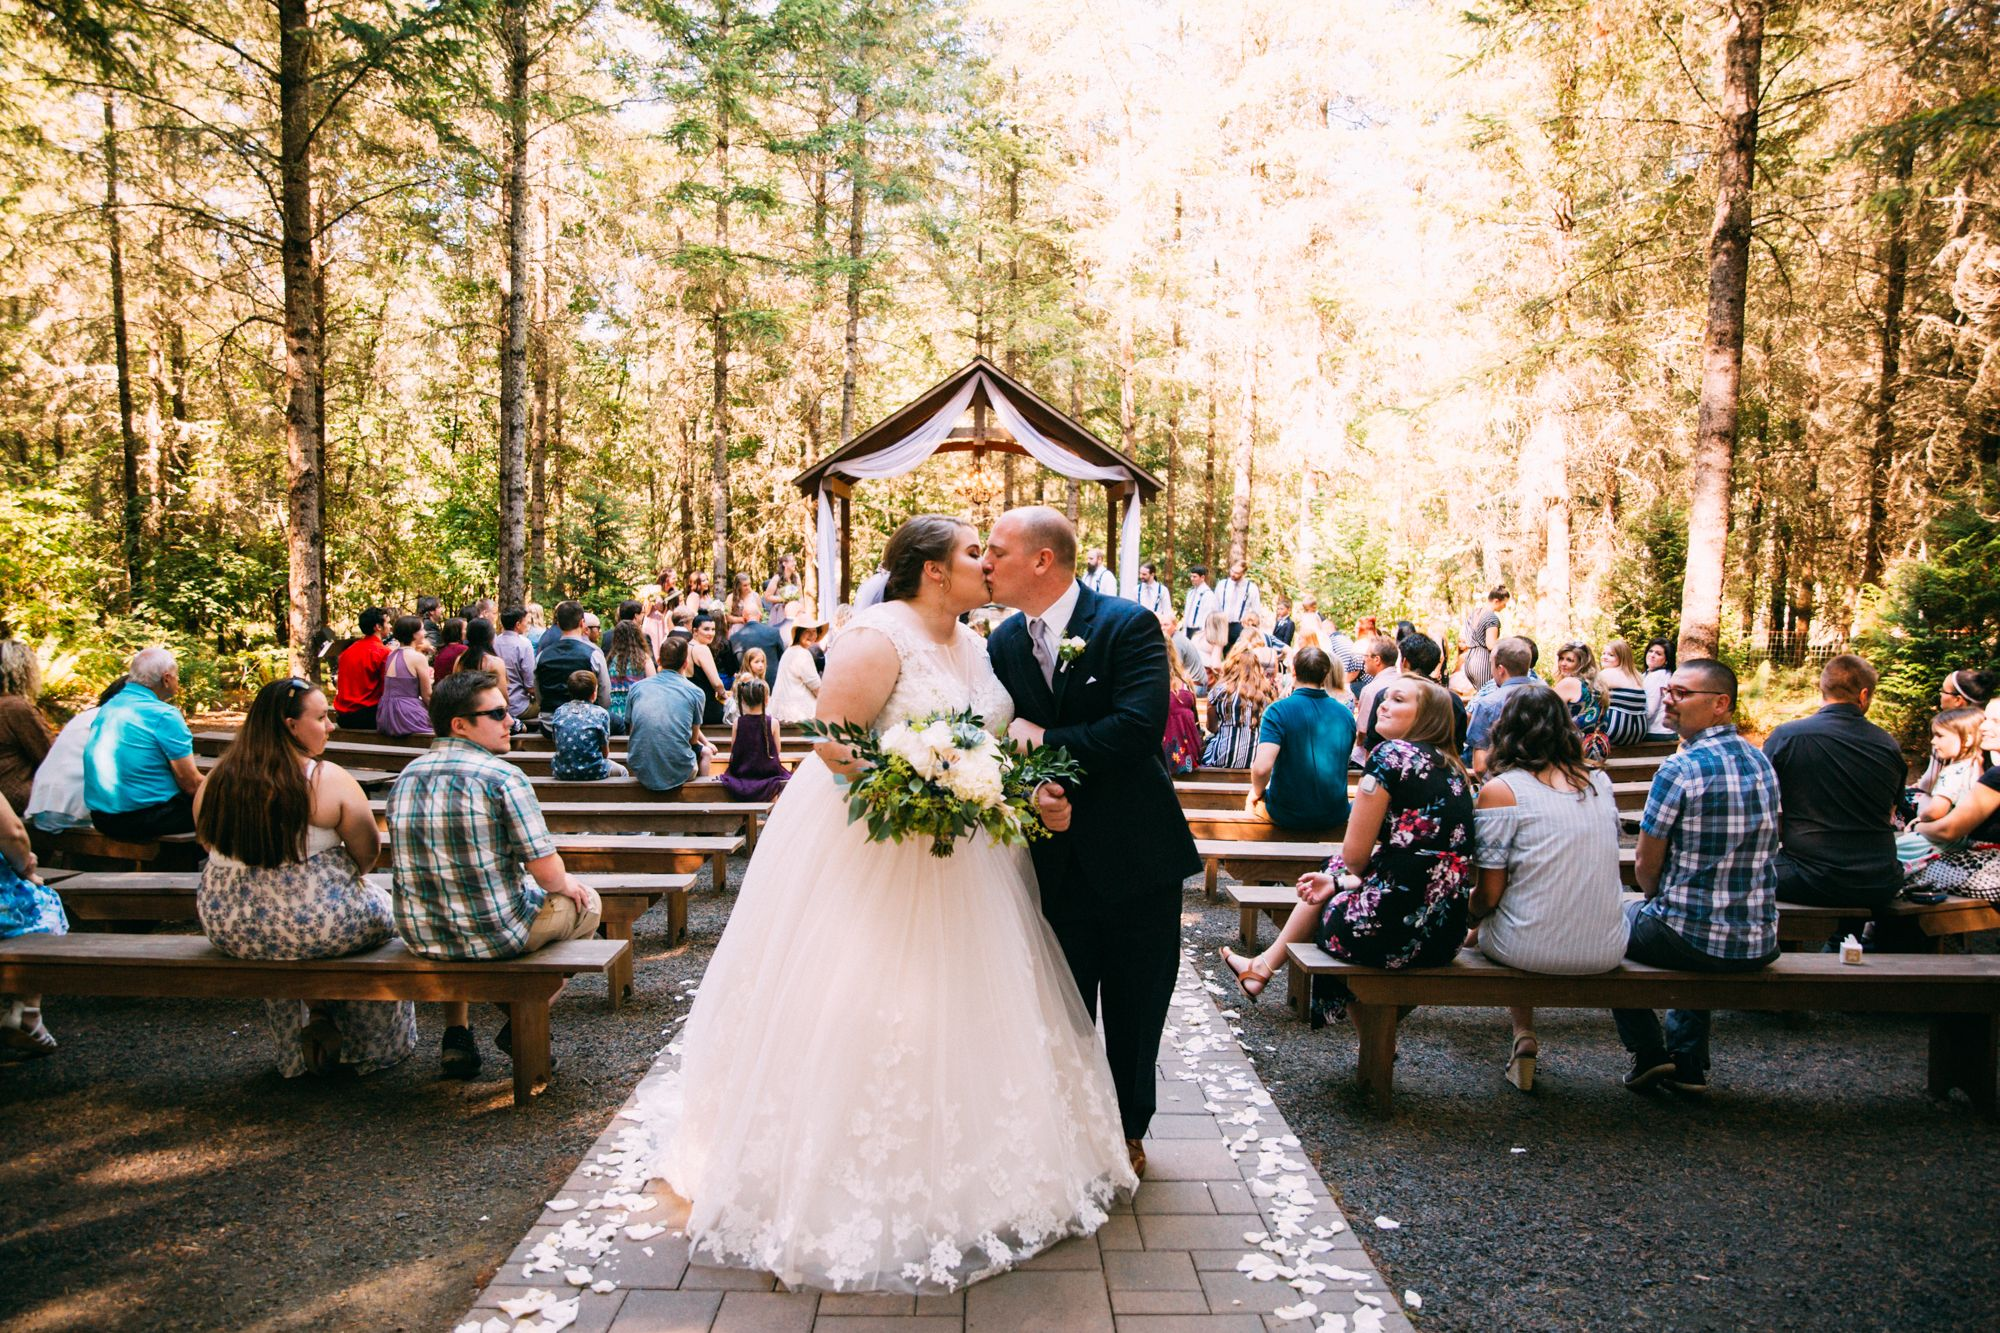 Outdoor Wedding Three Strands Farm Oregon Portland Wedding Photographer Sarah Lynn Photogra In 2020 Portland Wedding Photographer Portland Weddings Outdoor Wedding